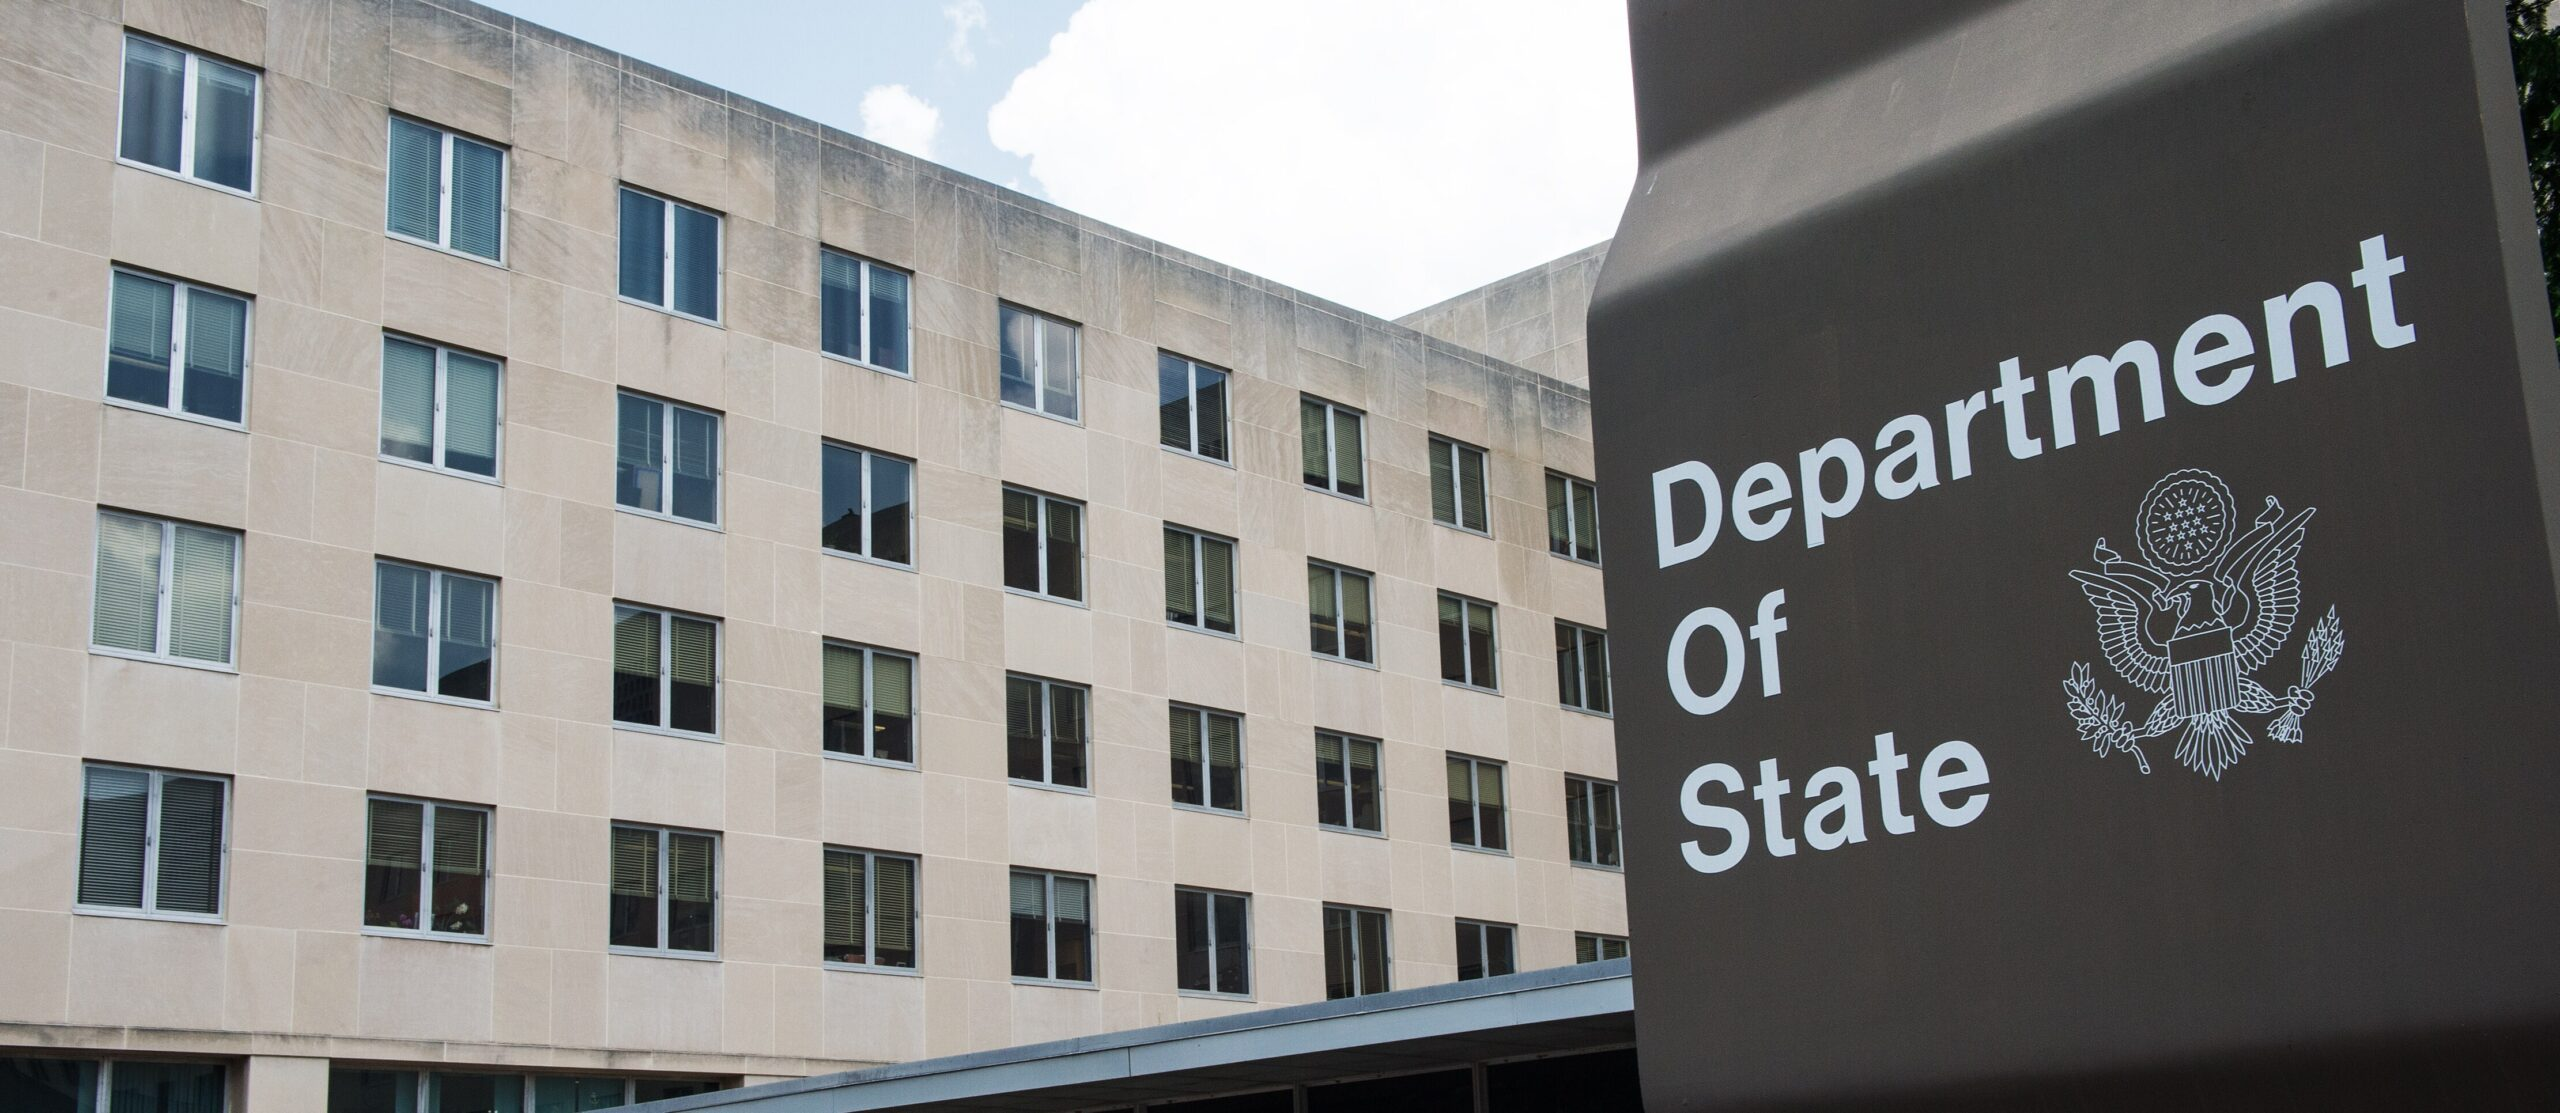 <i>Paul J. Richards/AFP/Getty Images</i><br/>A bipartisan group of senators called on Secretary of State Antony Blinken to appoint a new senior official to lead the State Department's efforts to address ongoing anomalous health incidents